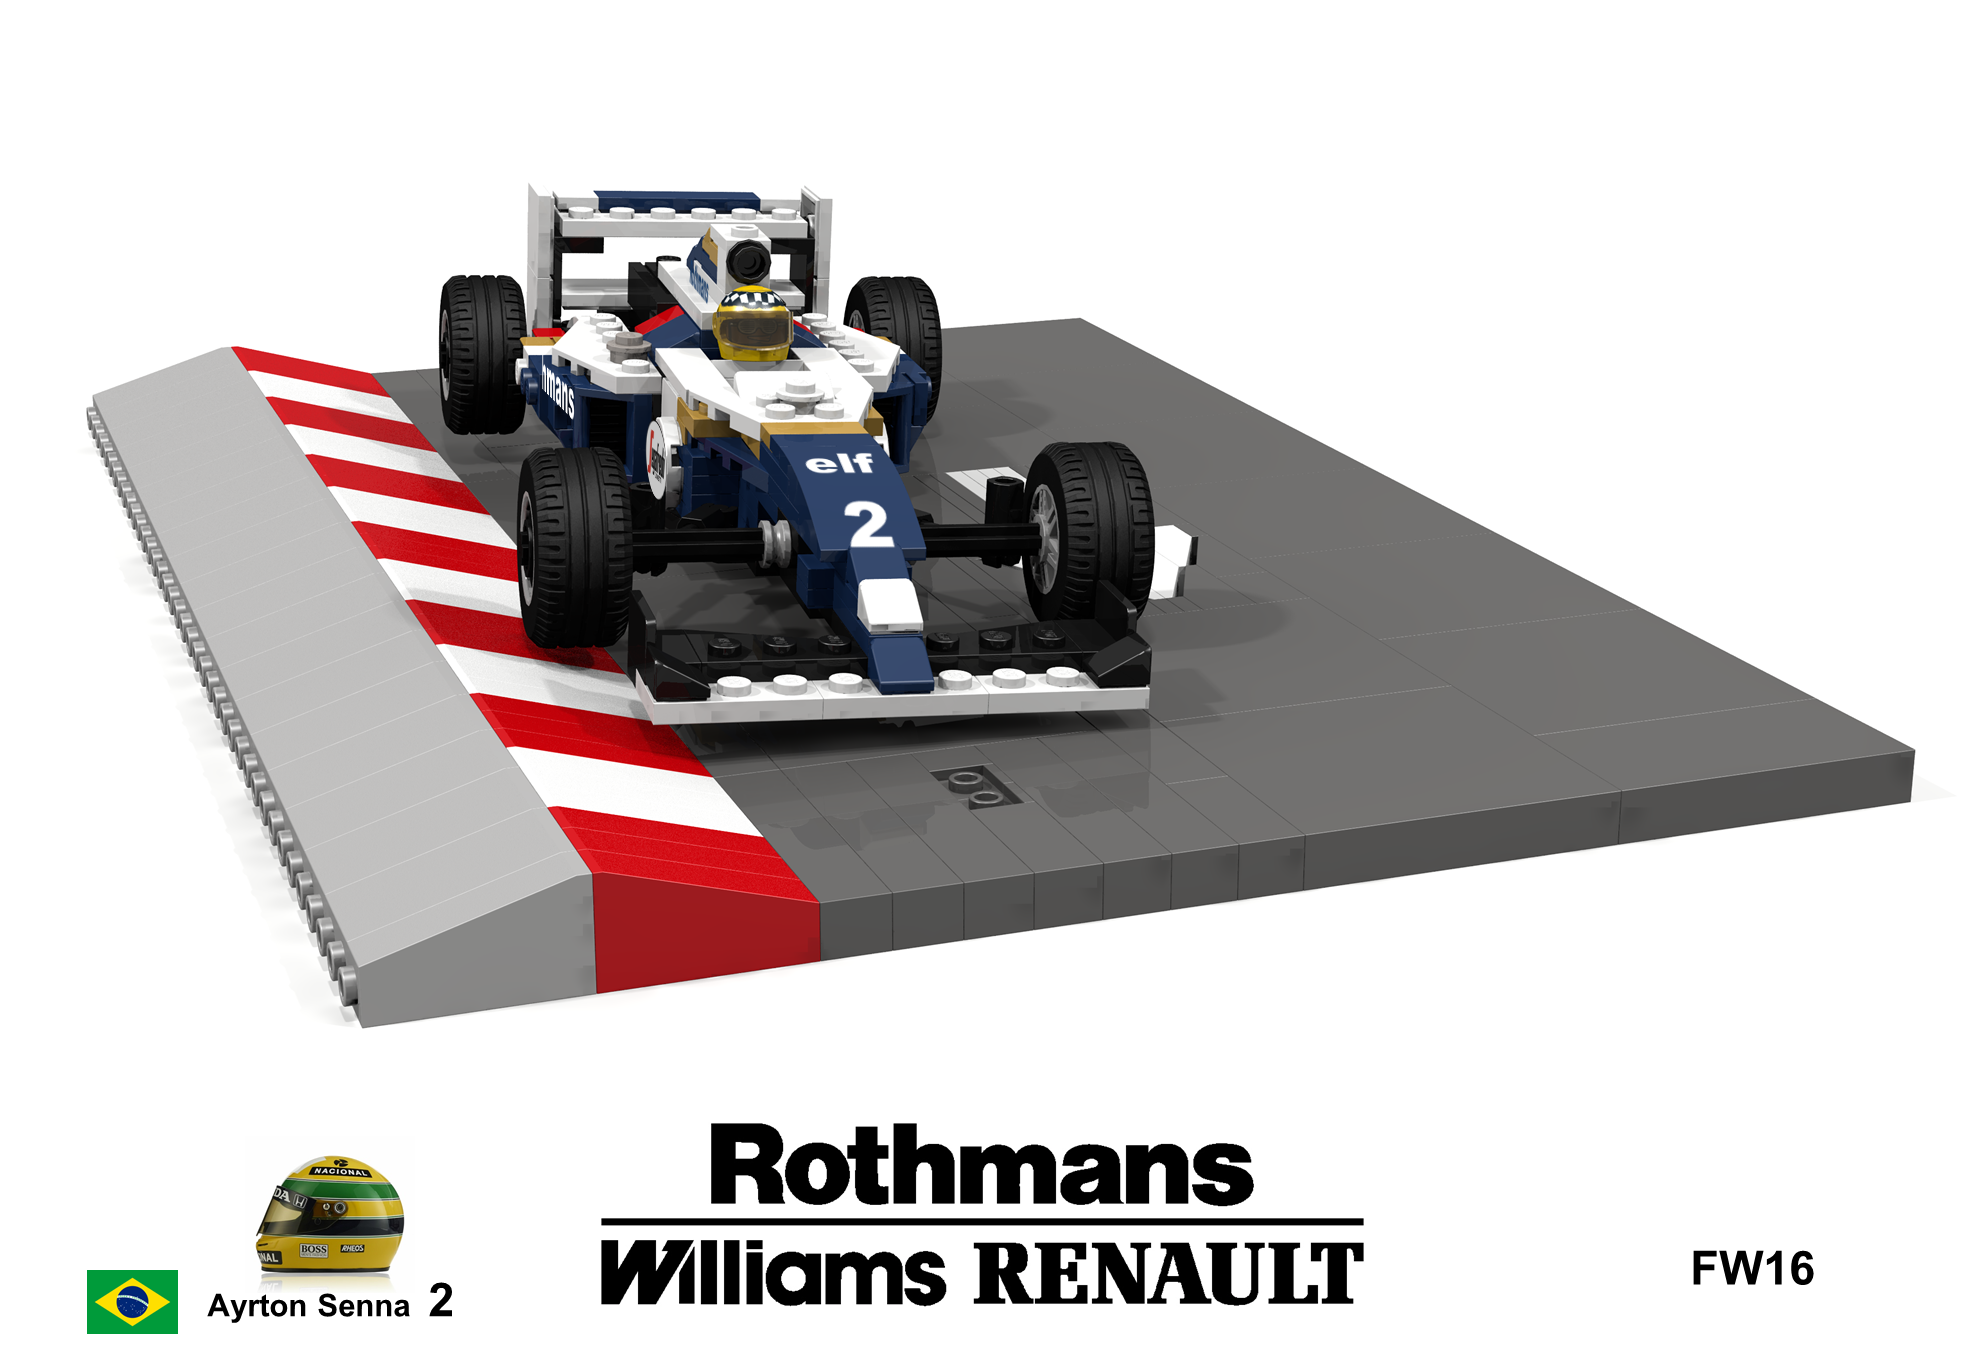 williams_renault_fw16_-_1994_10.png